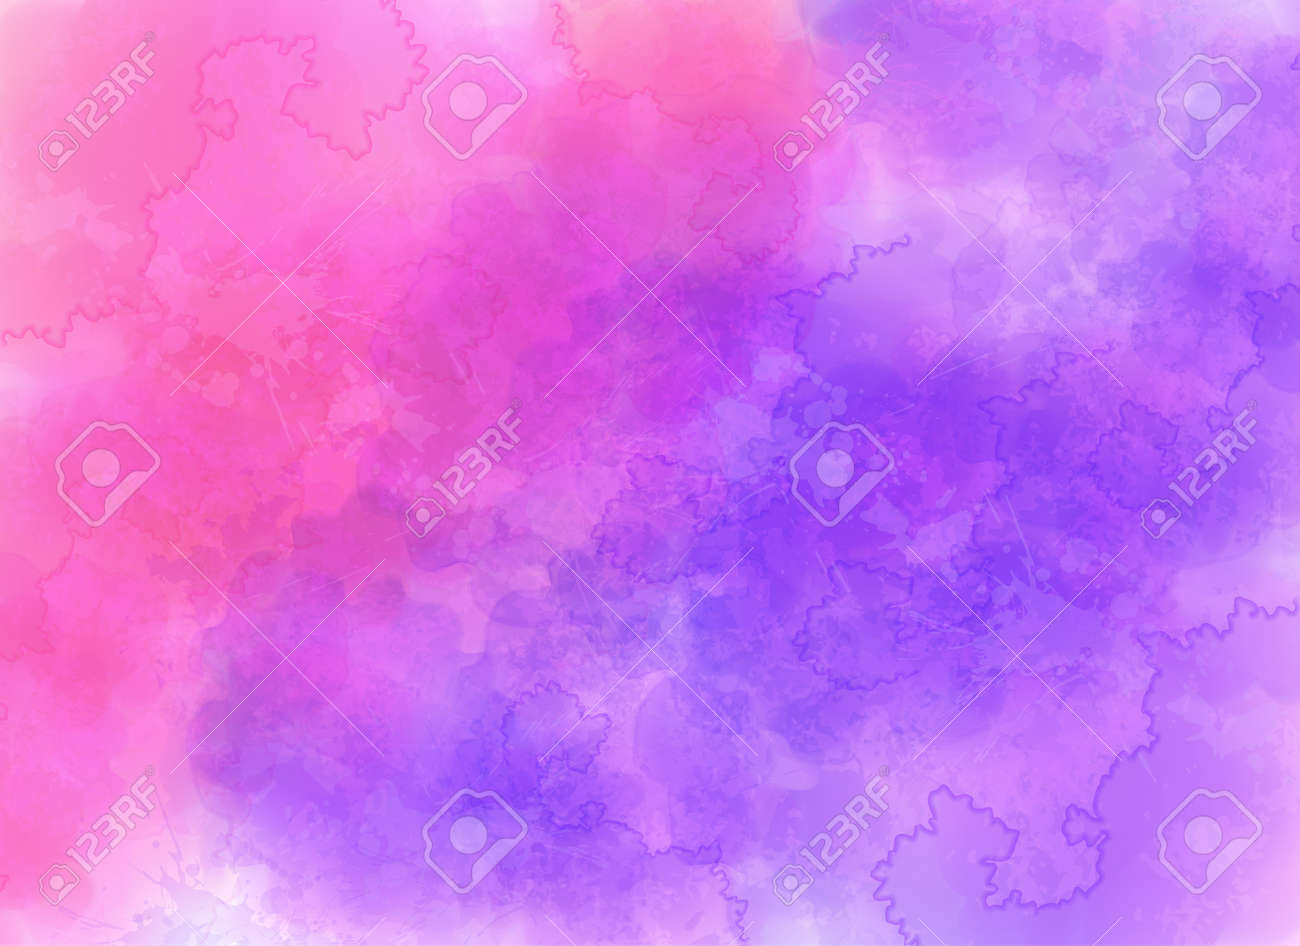 Purple and pink watercolor effect vector background royalty free purple and pink watercolor effect vector background stock vector 44338319 junglespirit Images